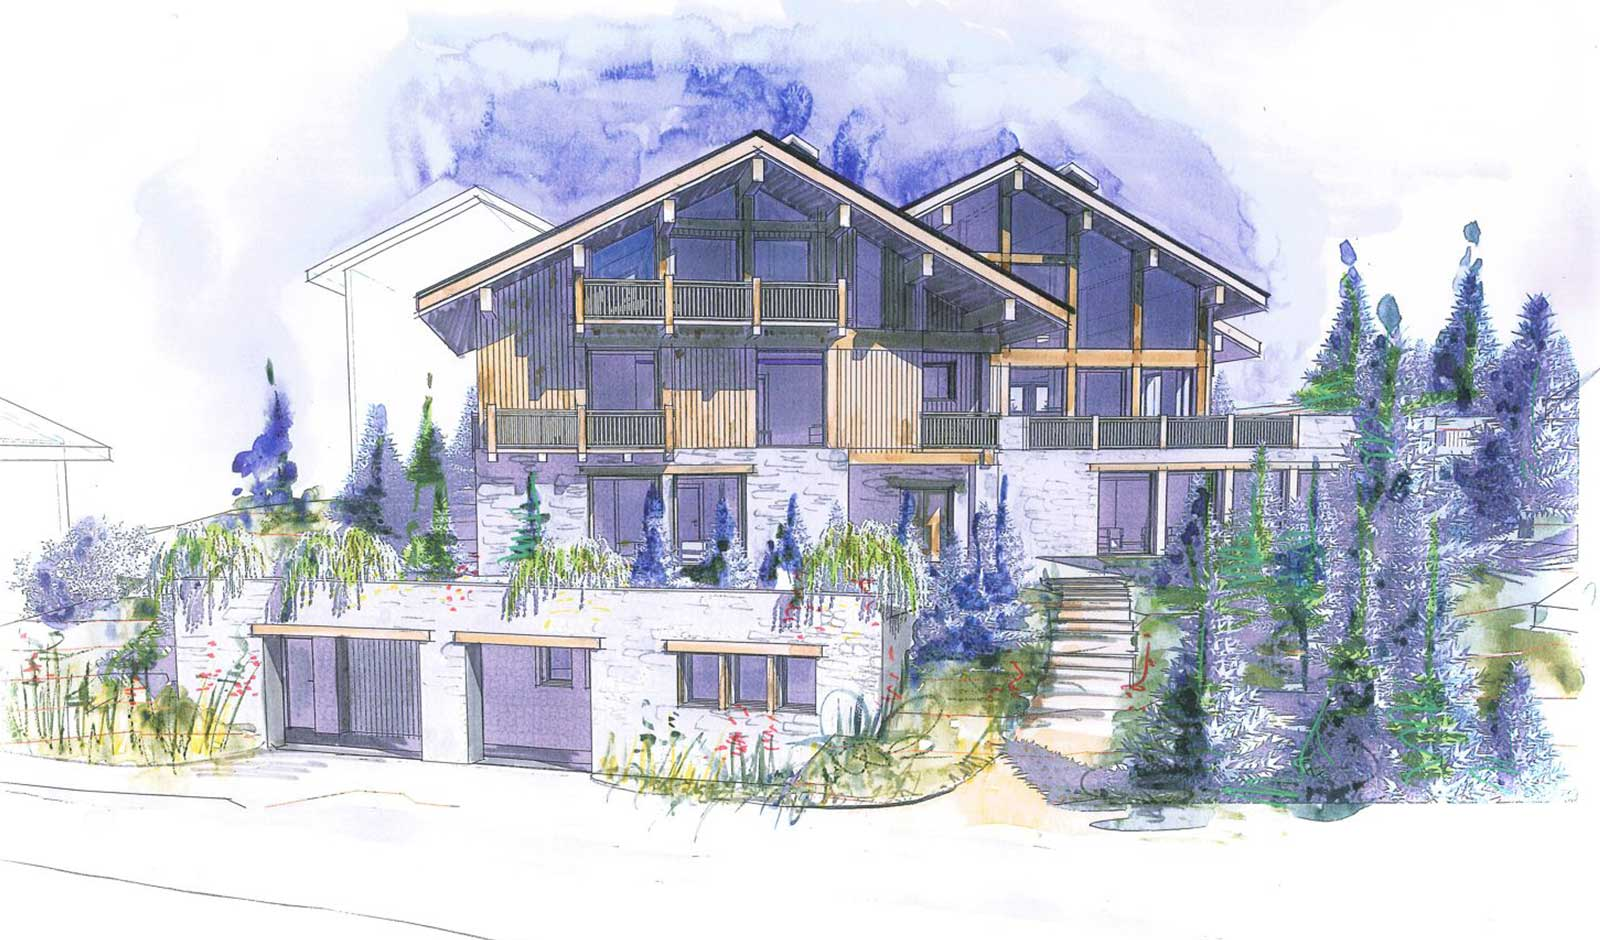 chalet-alpaca-1-atelier-crea-and-co-architecte-design-project-manager-meribel-savoie